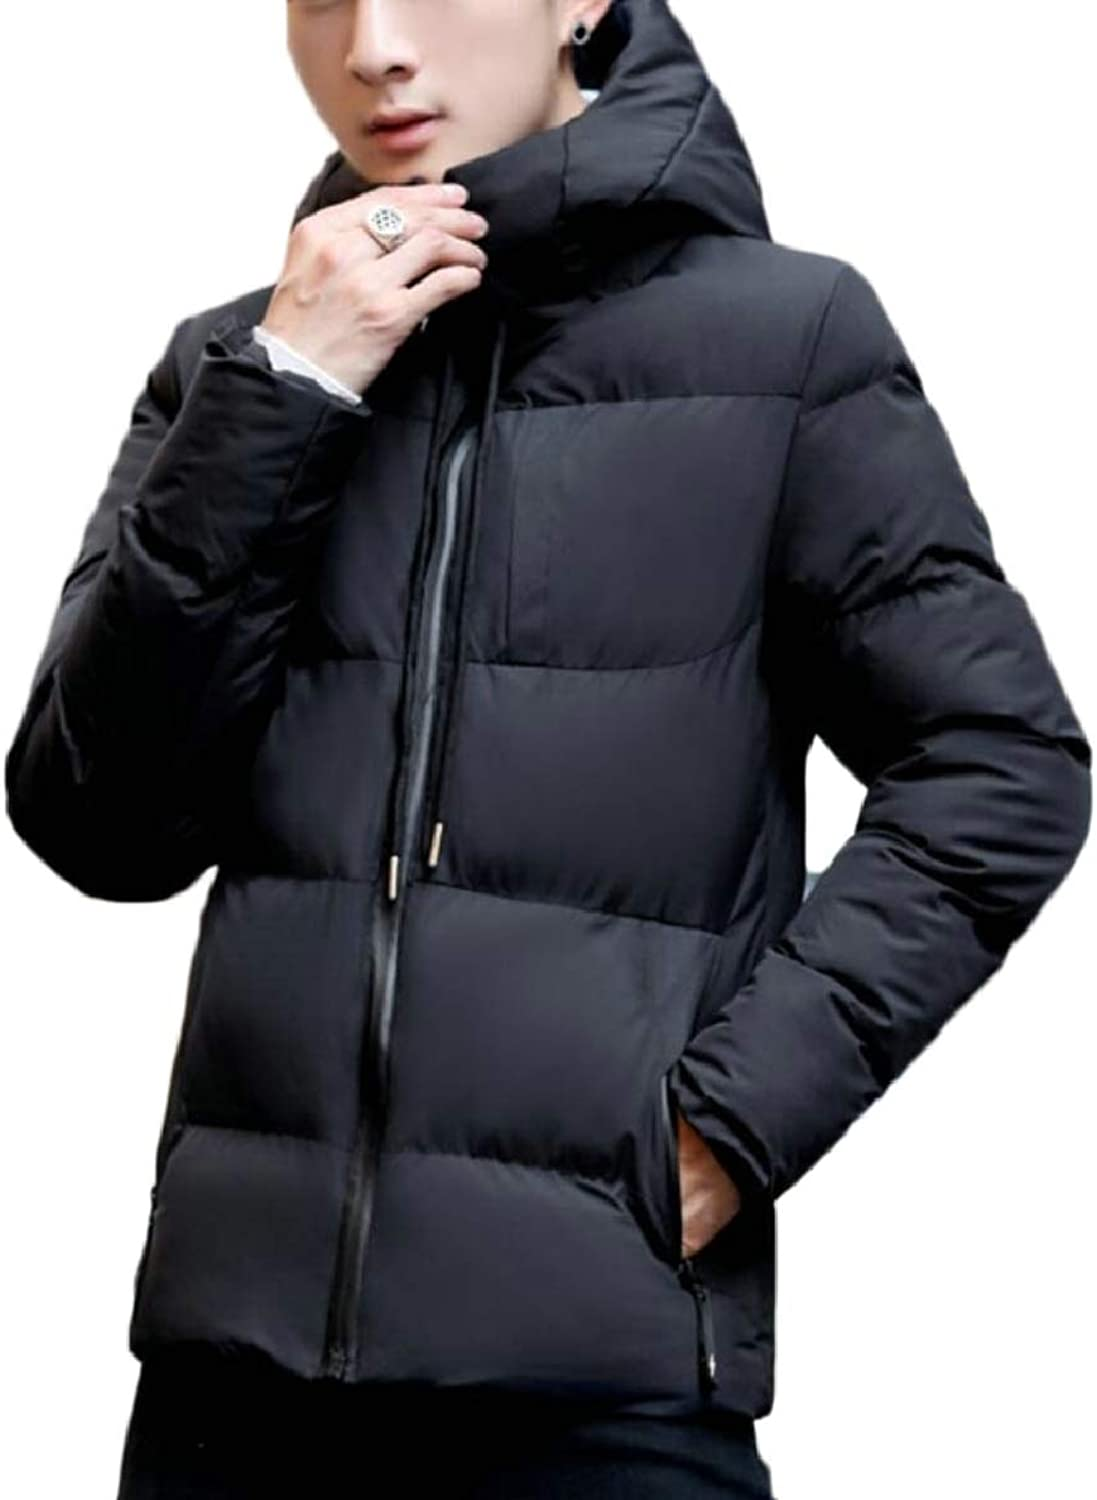 omniscient Men Thick Warm Lined Fleece Hooded Sweatshirt Coat Jacket